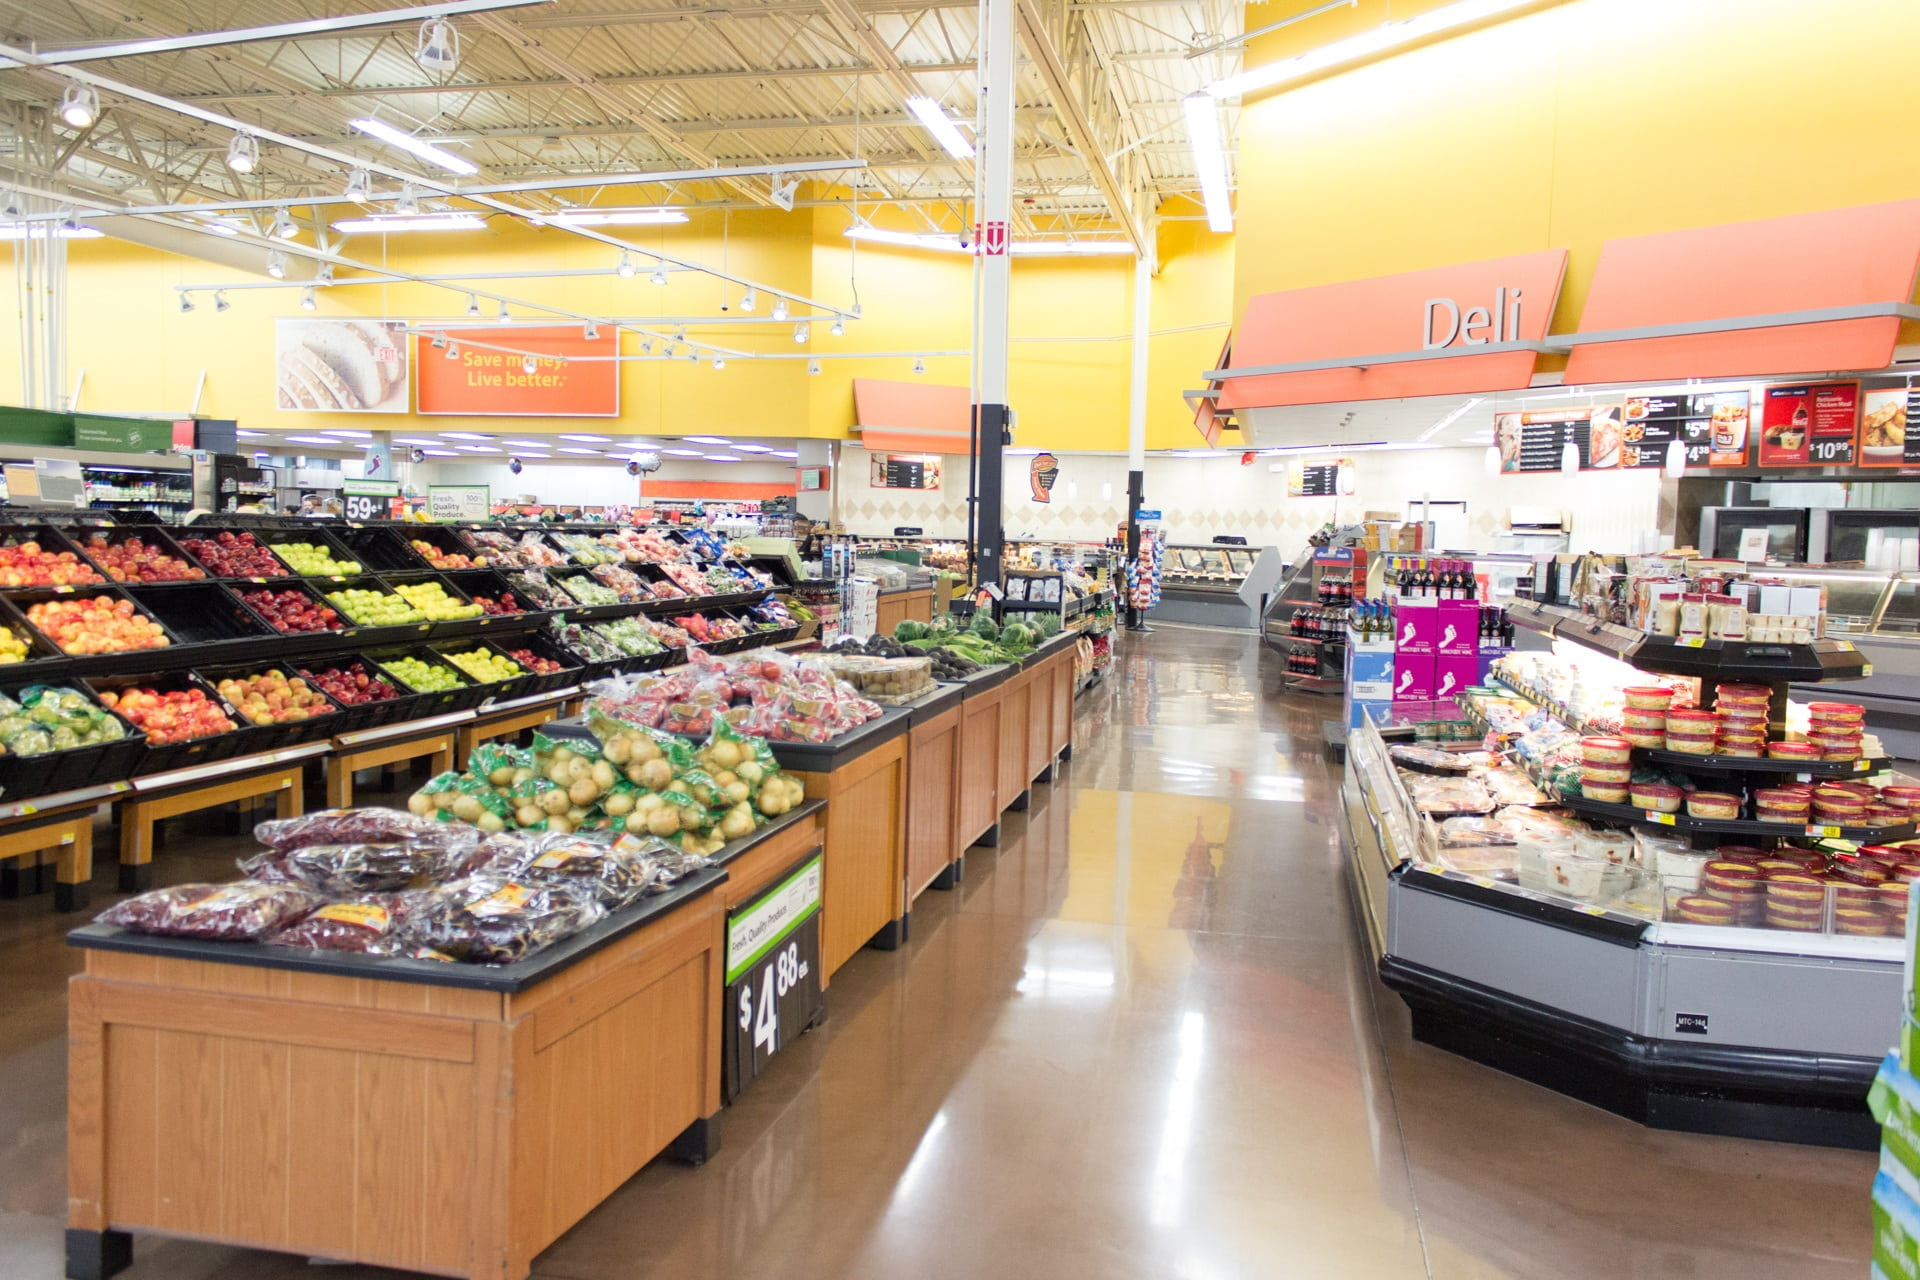 Supermarket & Retail Center Cleaning Services